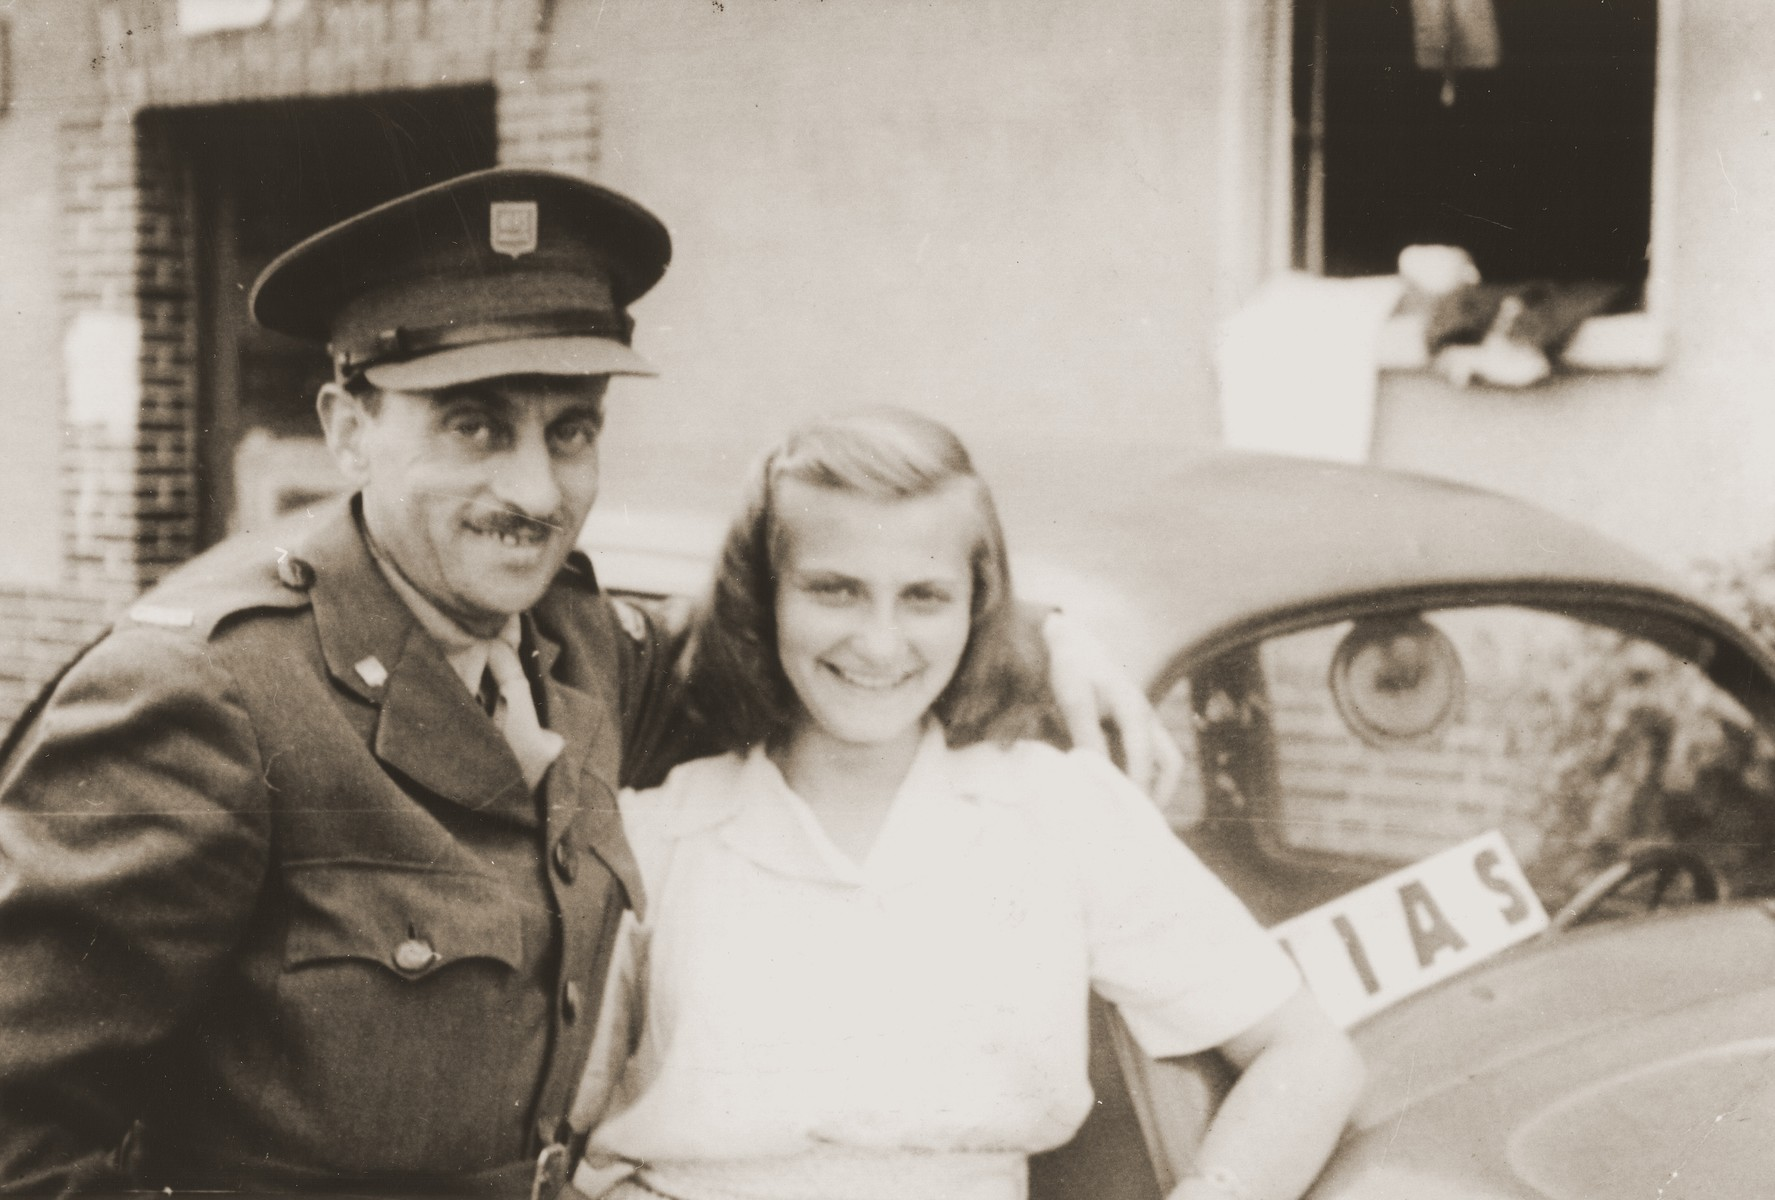 Salusia Goldblum poses with HIAS officer, Menachem Kraicer, at the Bergen-Belsen displaced persons camp.  Menachem was the brother-in-law of Salusia's aunt Ange (Broda) Kraicer in Toronto.  It was with his assistance that Salusia was able to secure a place on the SS Ernie Pyle.